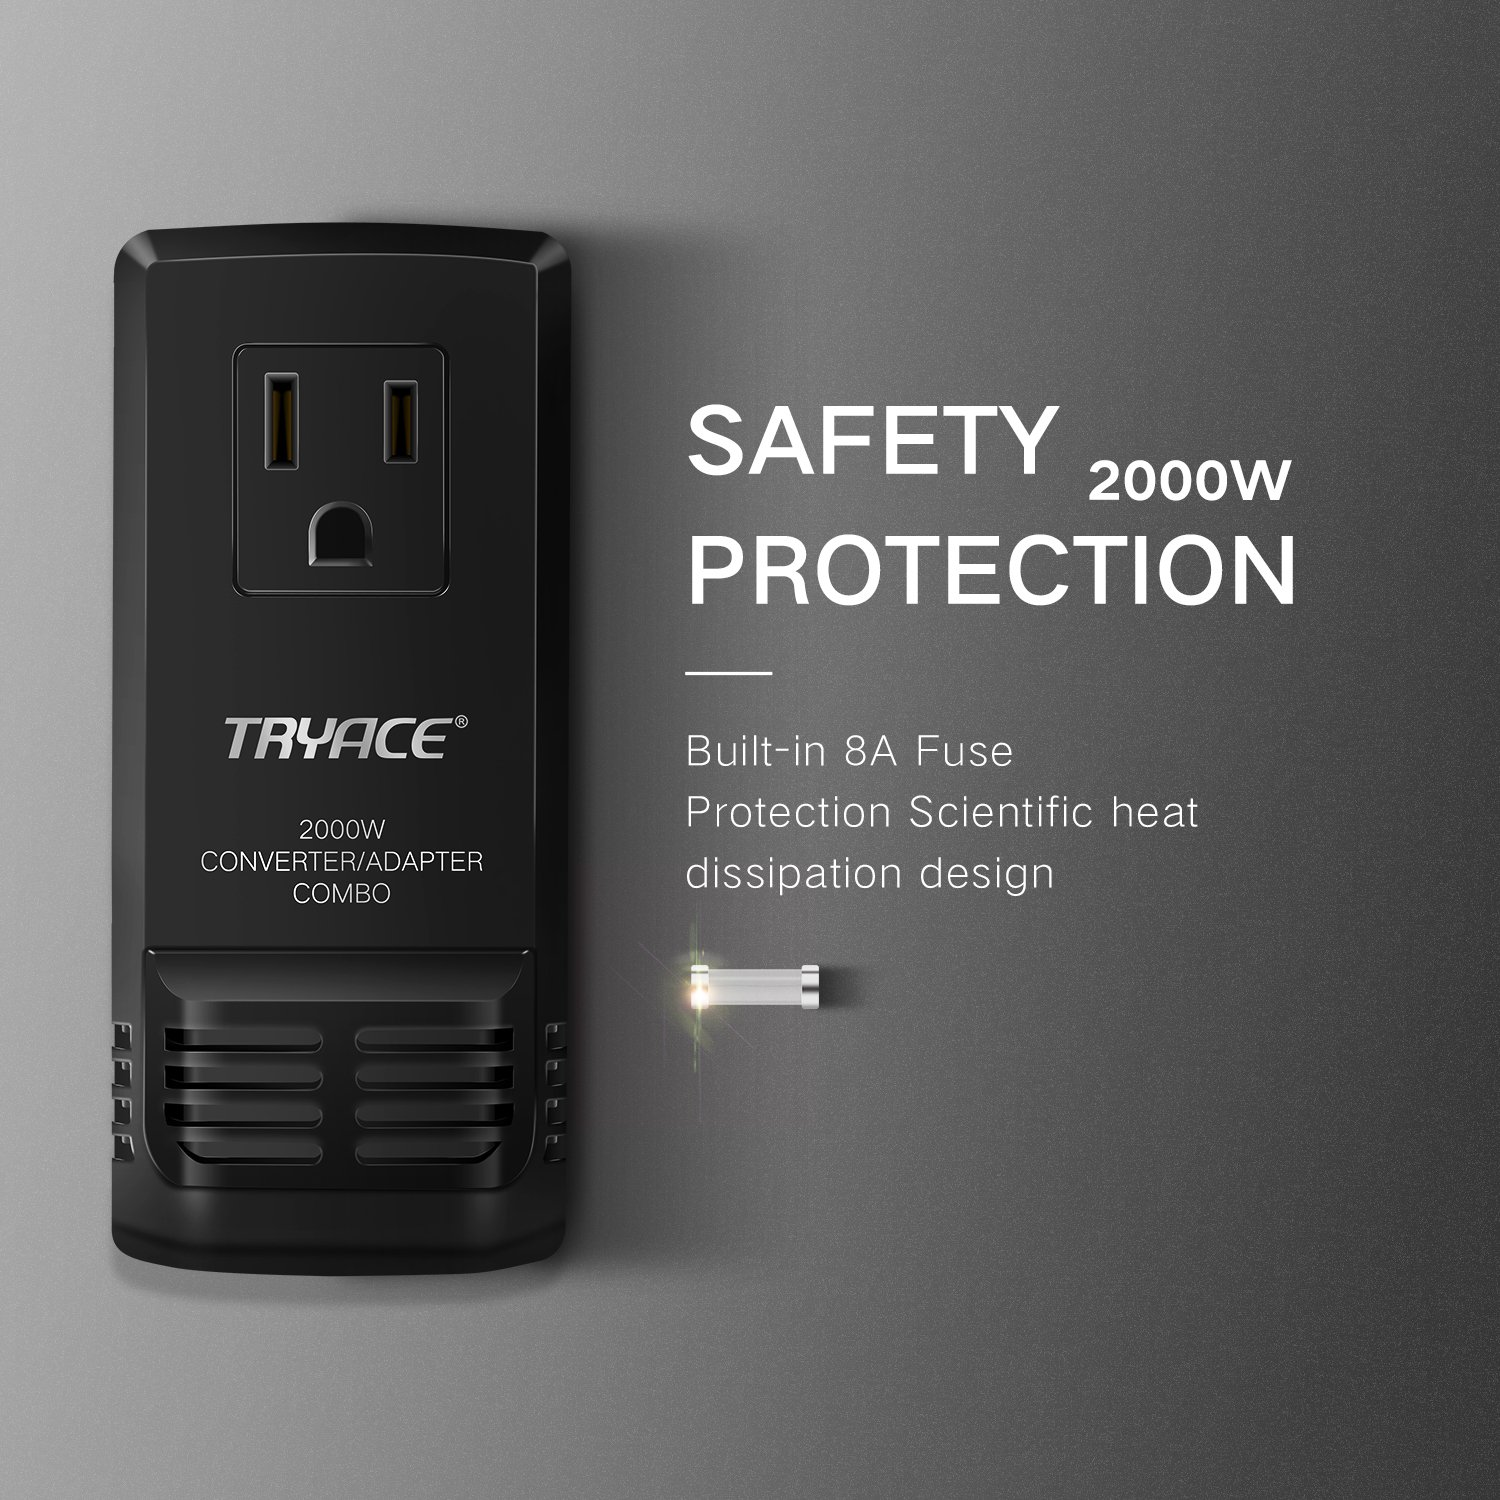 TryAce 2000W Worldwide Travel Converter and Adapter Set Down Voltage 240V to 110V Combo International Voltage Converter for Hair Dryer Phones Laptop All in One Plug Adapter Wall Charge for UK/AU/US/EU by TryAce (Image #5)